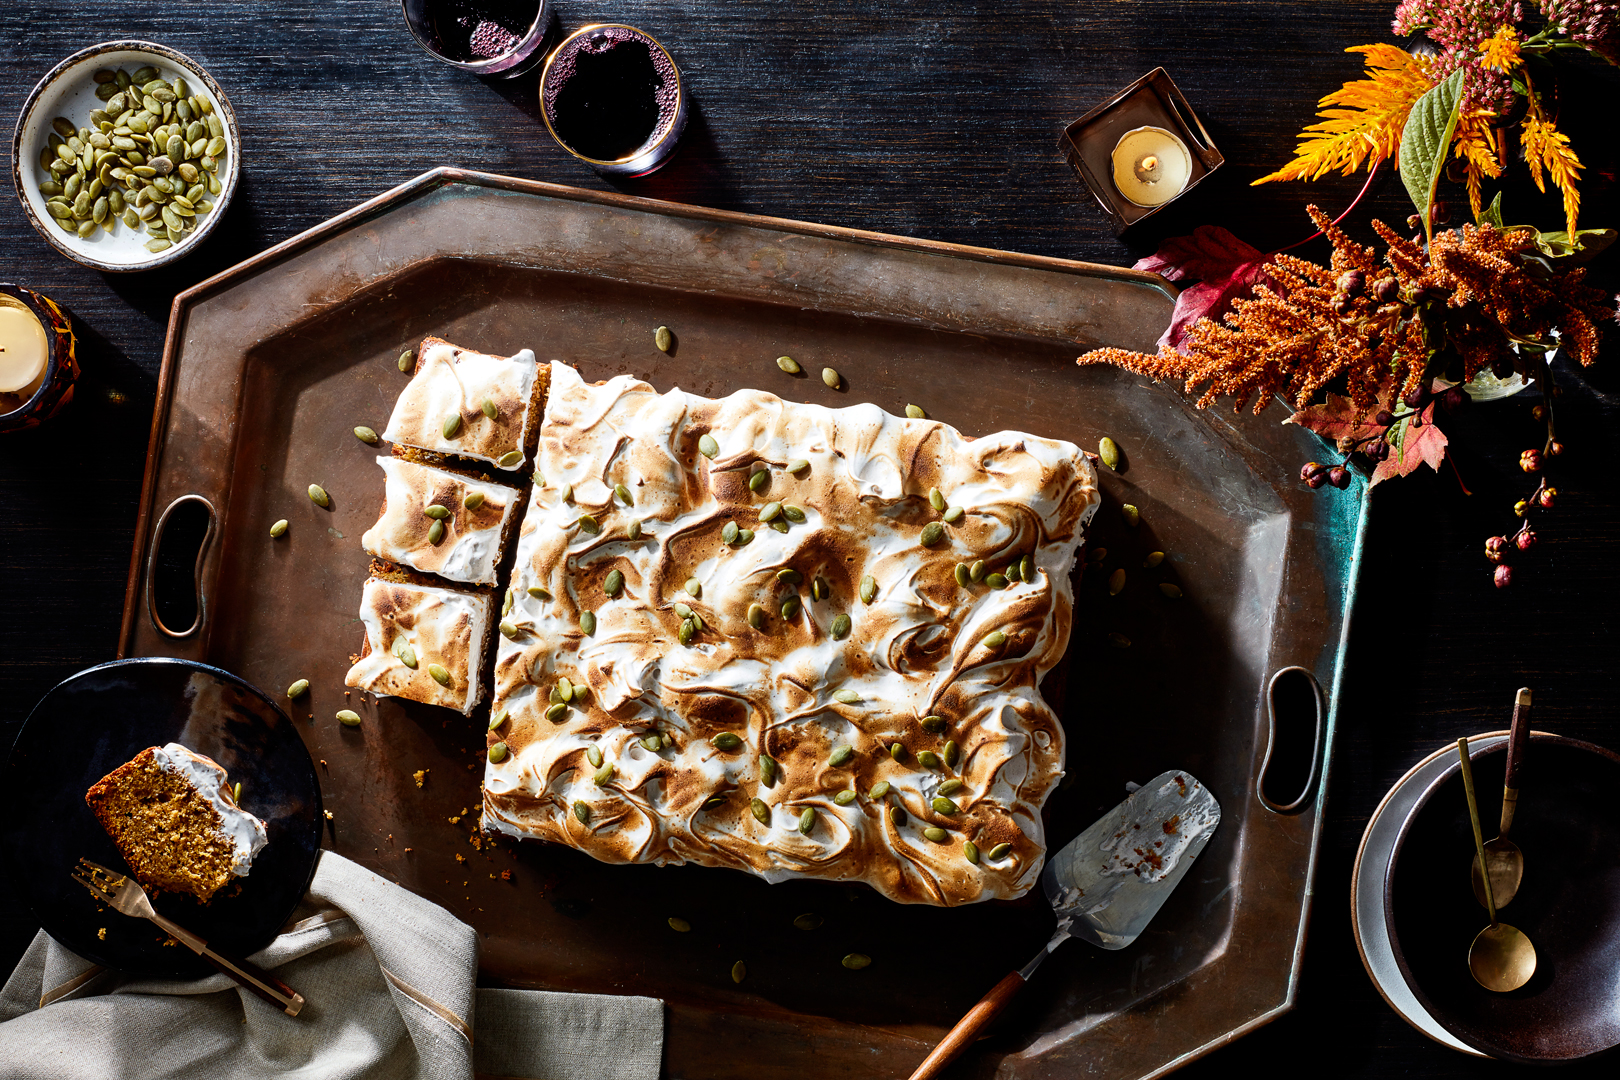 Pumpkin-and-Speculoos-Sheet-Cake-with-Meringue-29092016-copy-1080.jpg